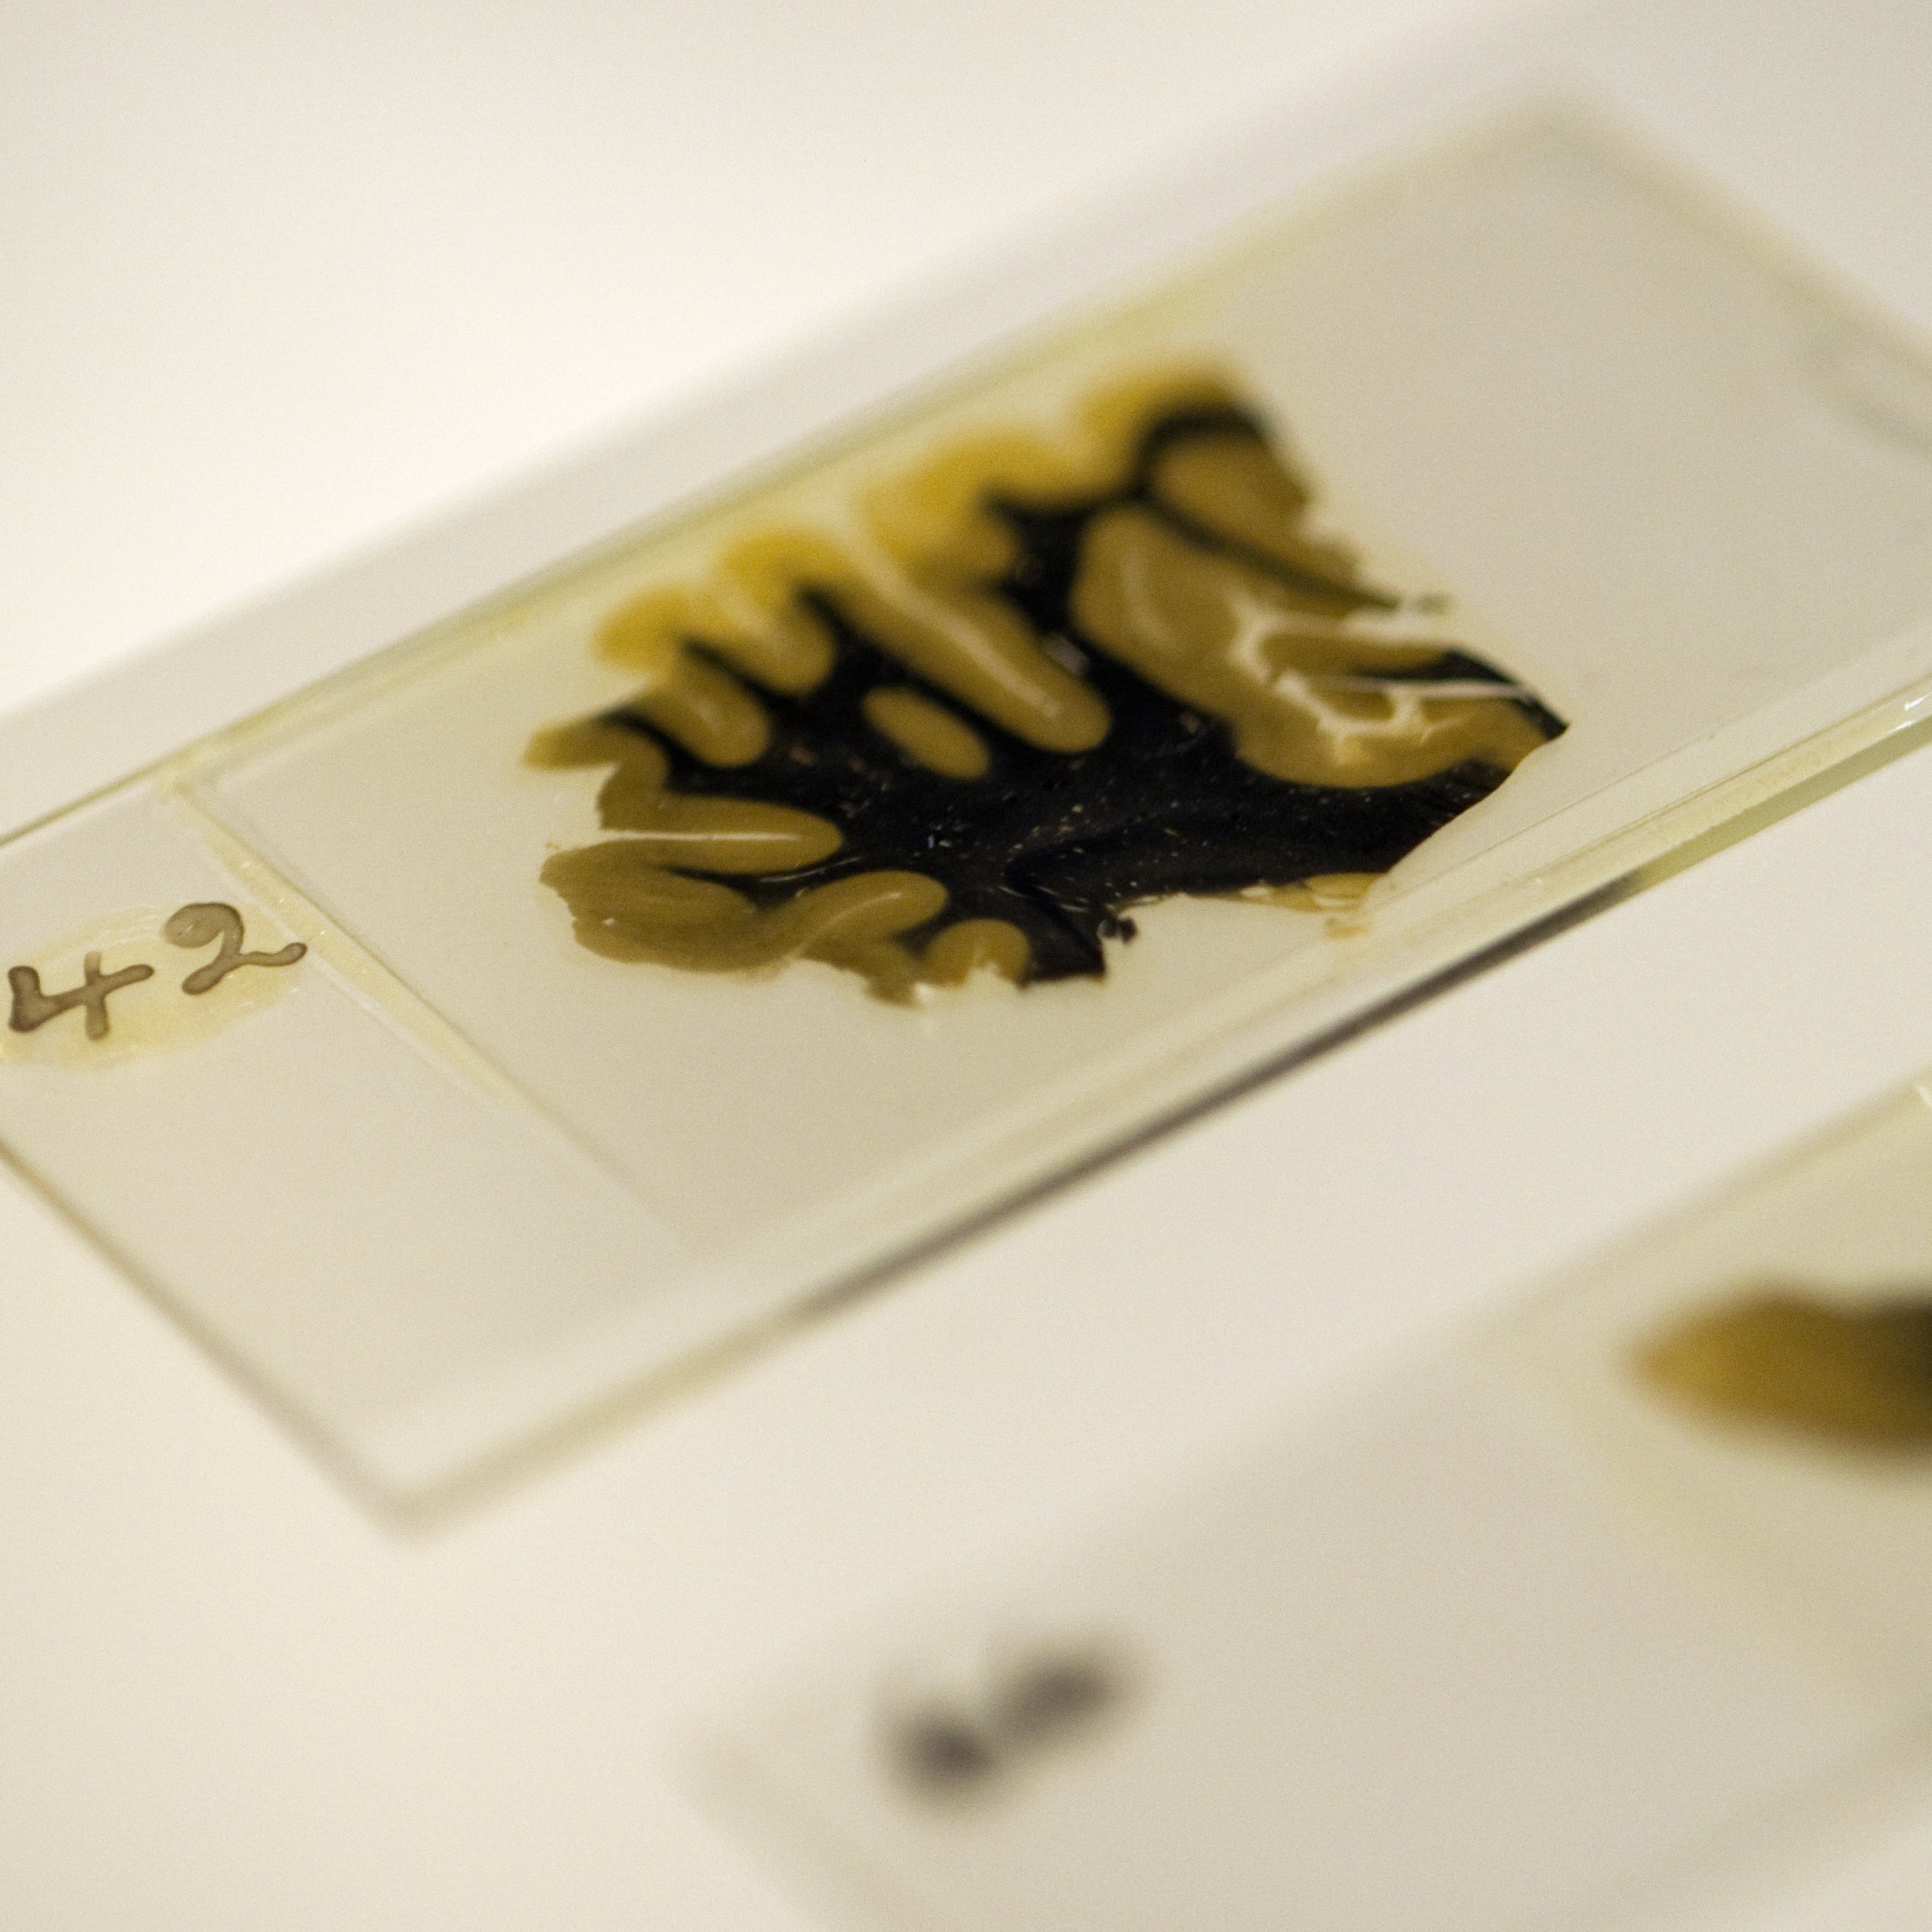 Thin slices of Einstein's brain were preserved on slides prepared by lab technician Marthe Keller in 1955.